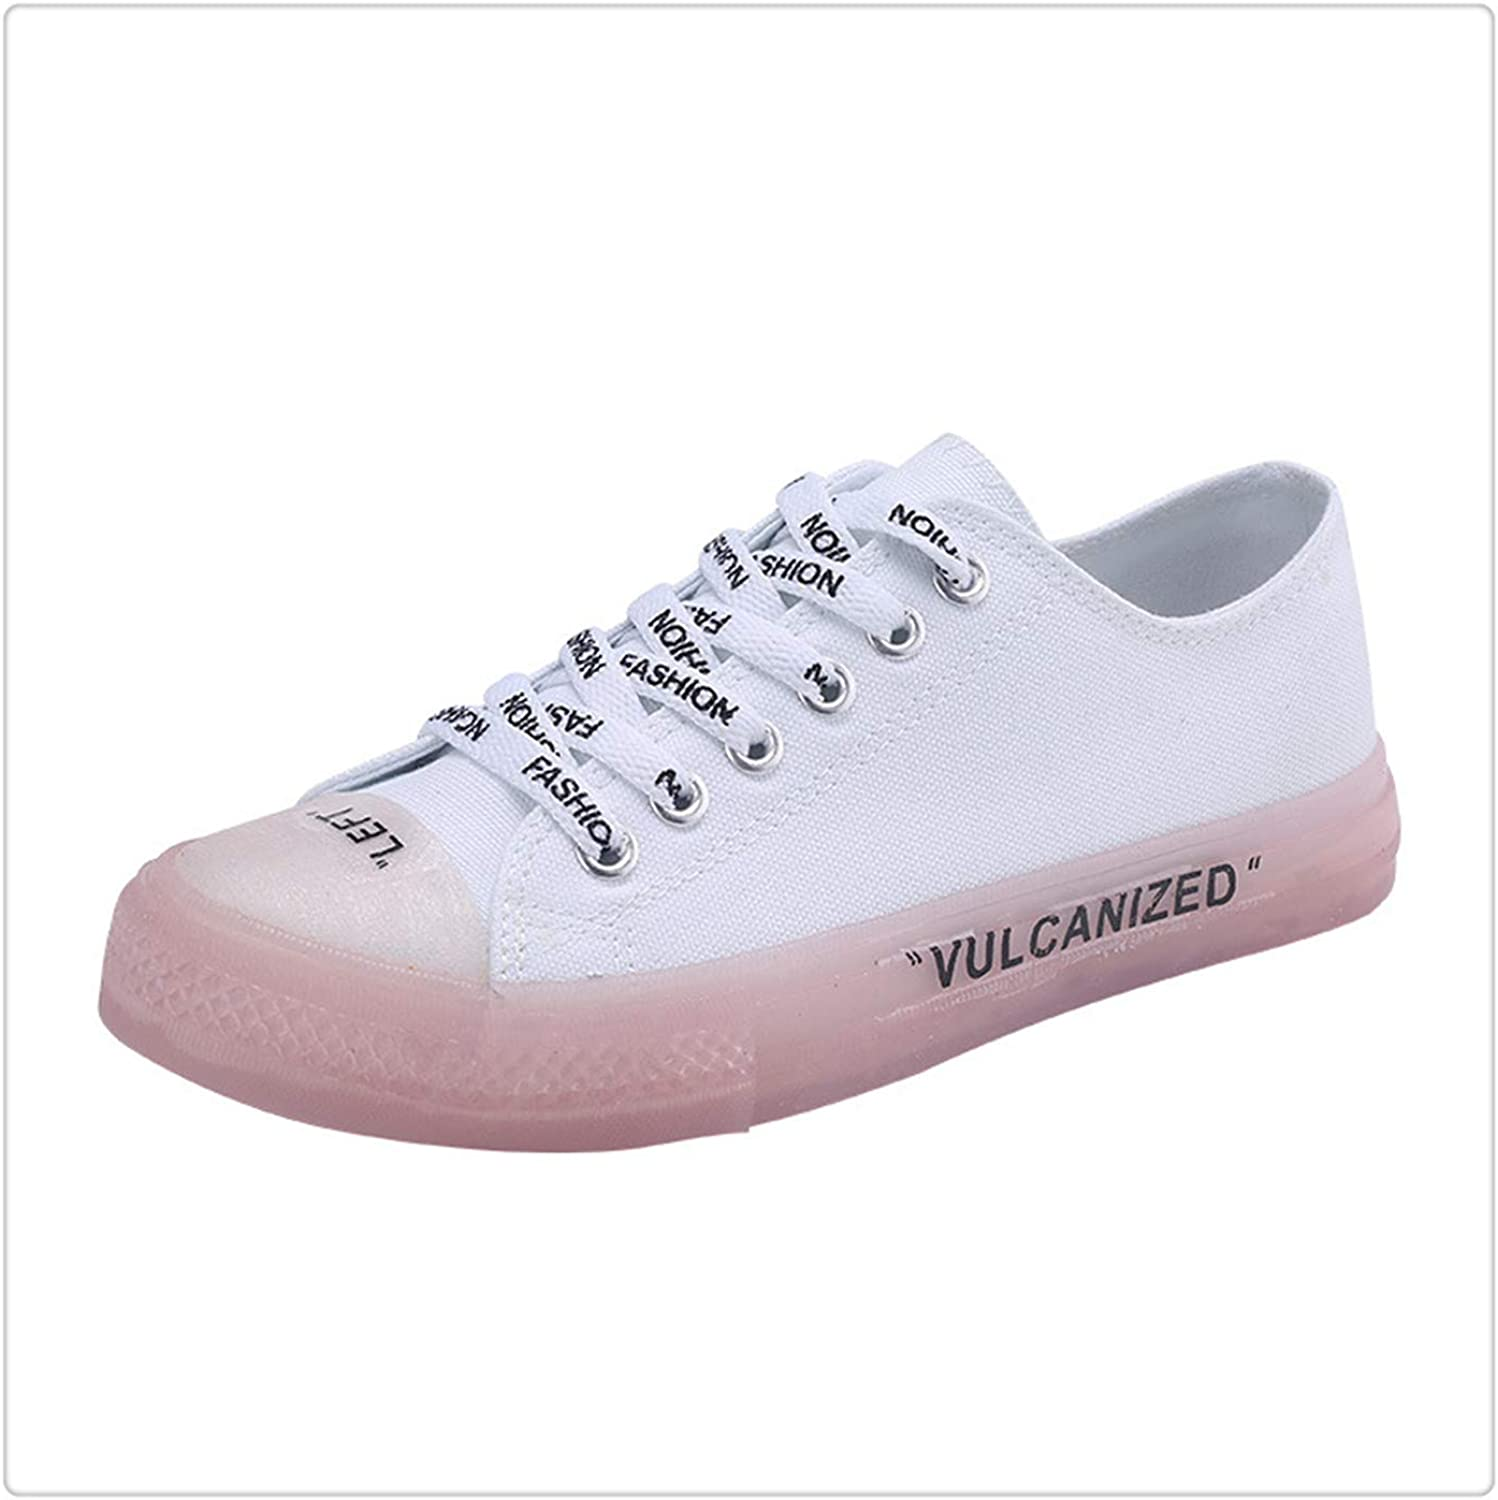 QUGKOP& Crystal Canvas shoes Transparent Women Vulcanize shoes Fashion Sneakers shoes